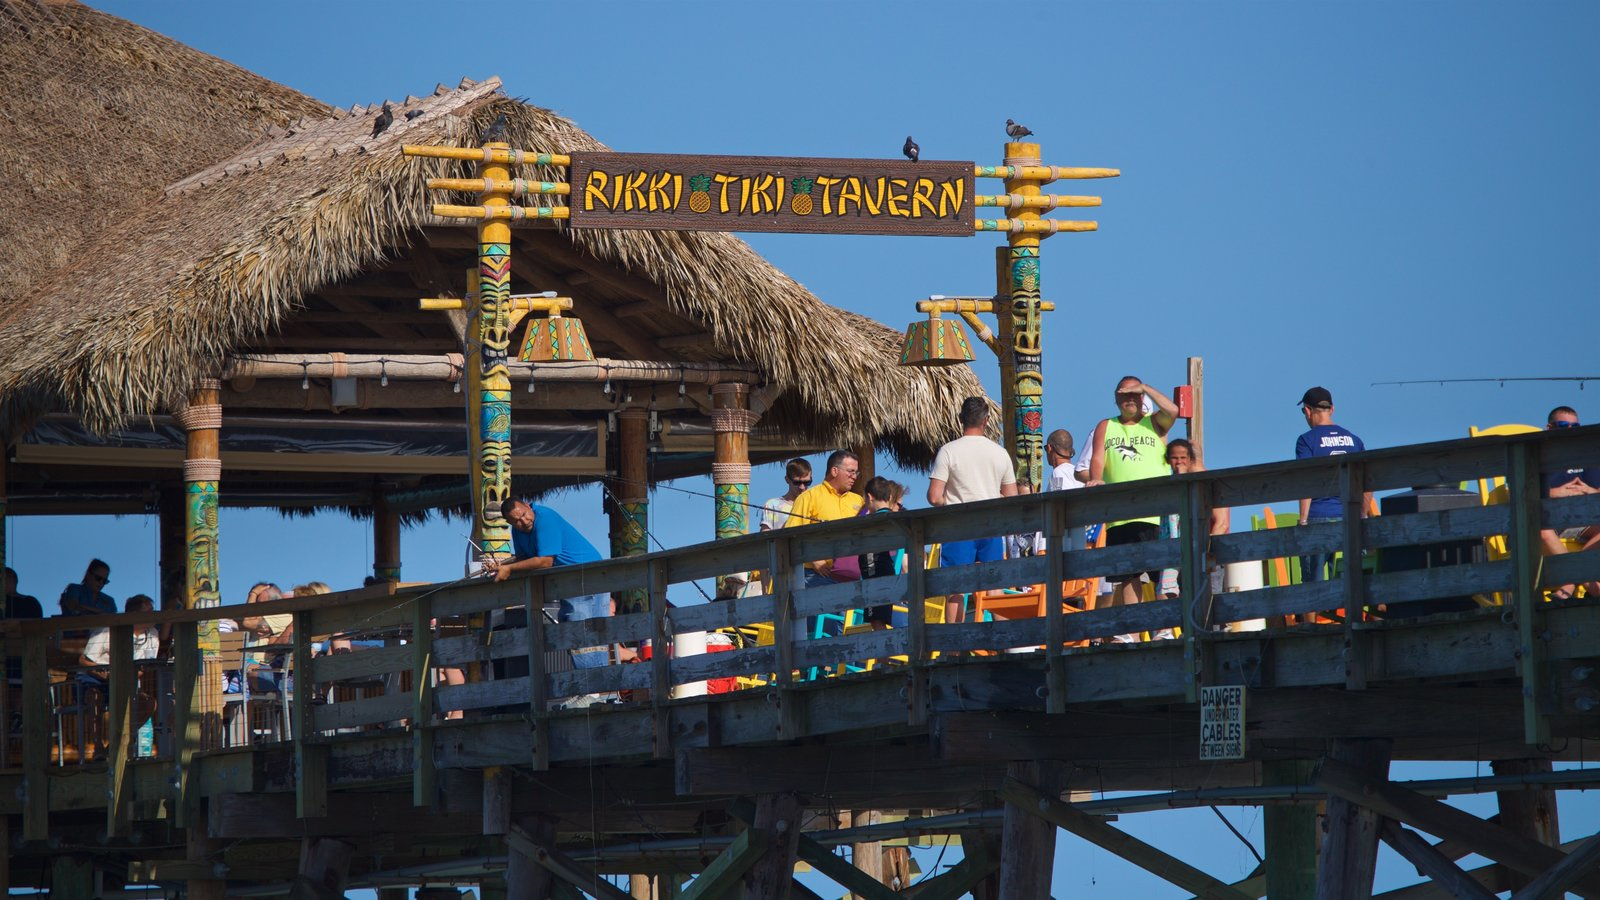 Cocoa Beach Pier featuring signage as well as a small group of people